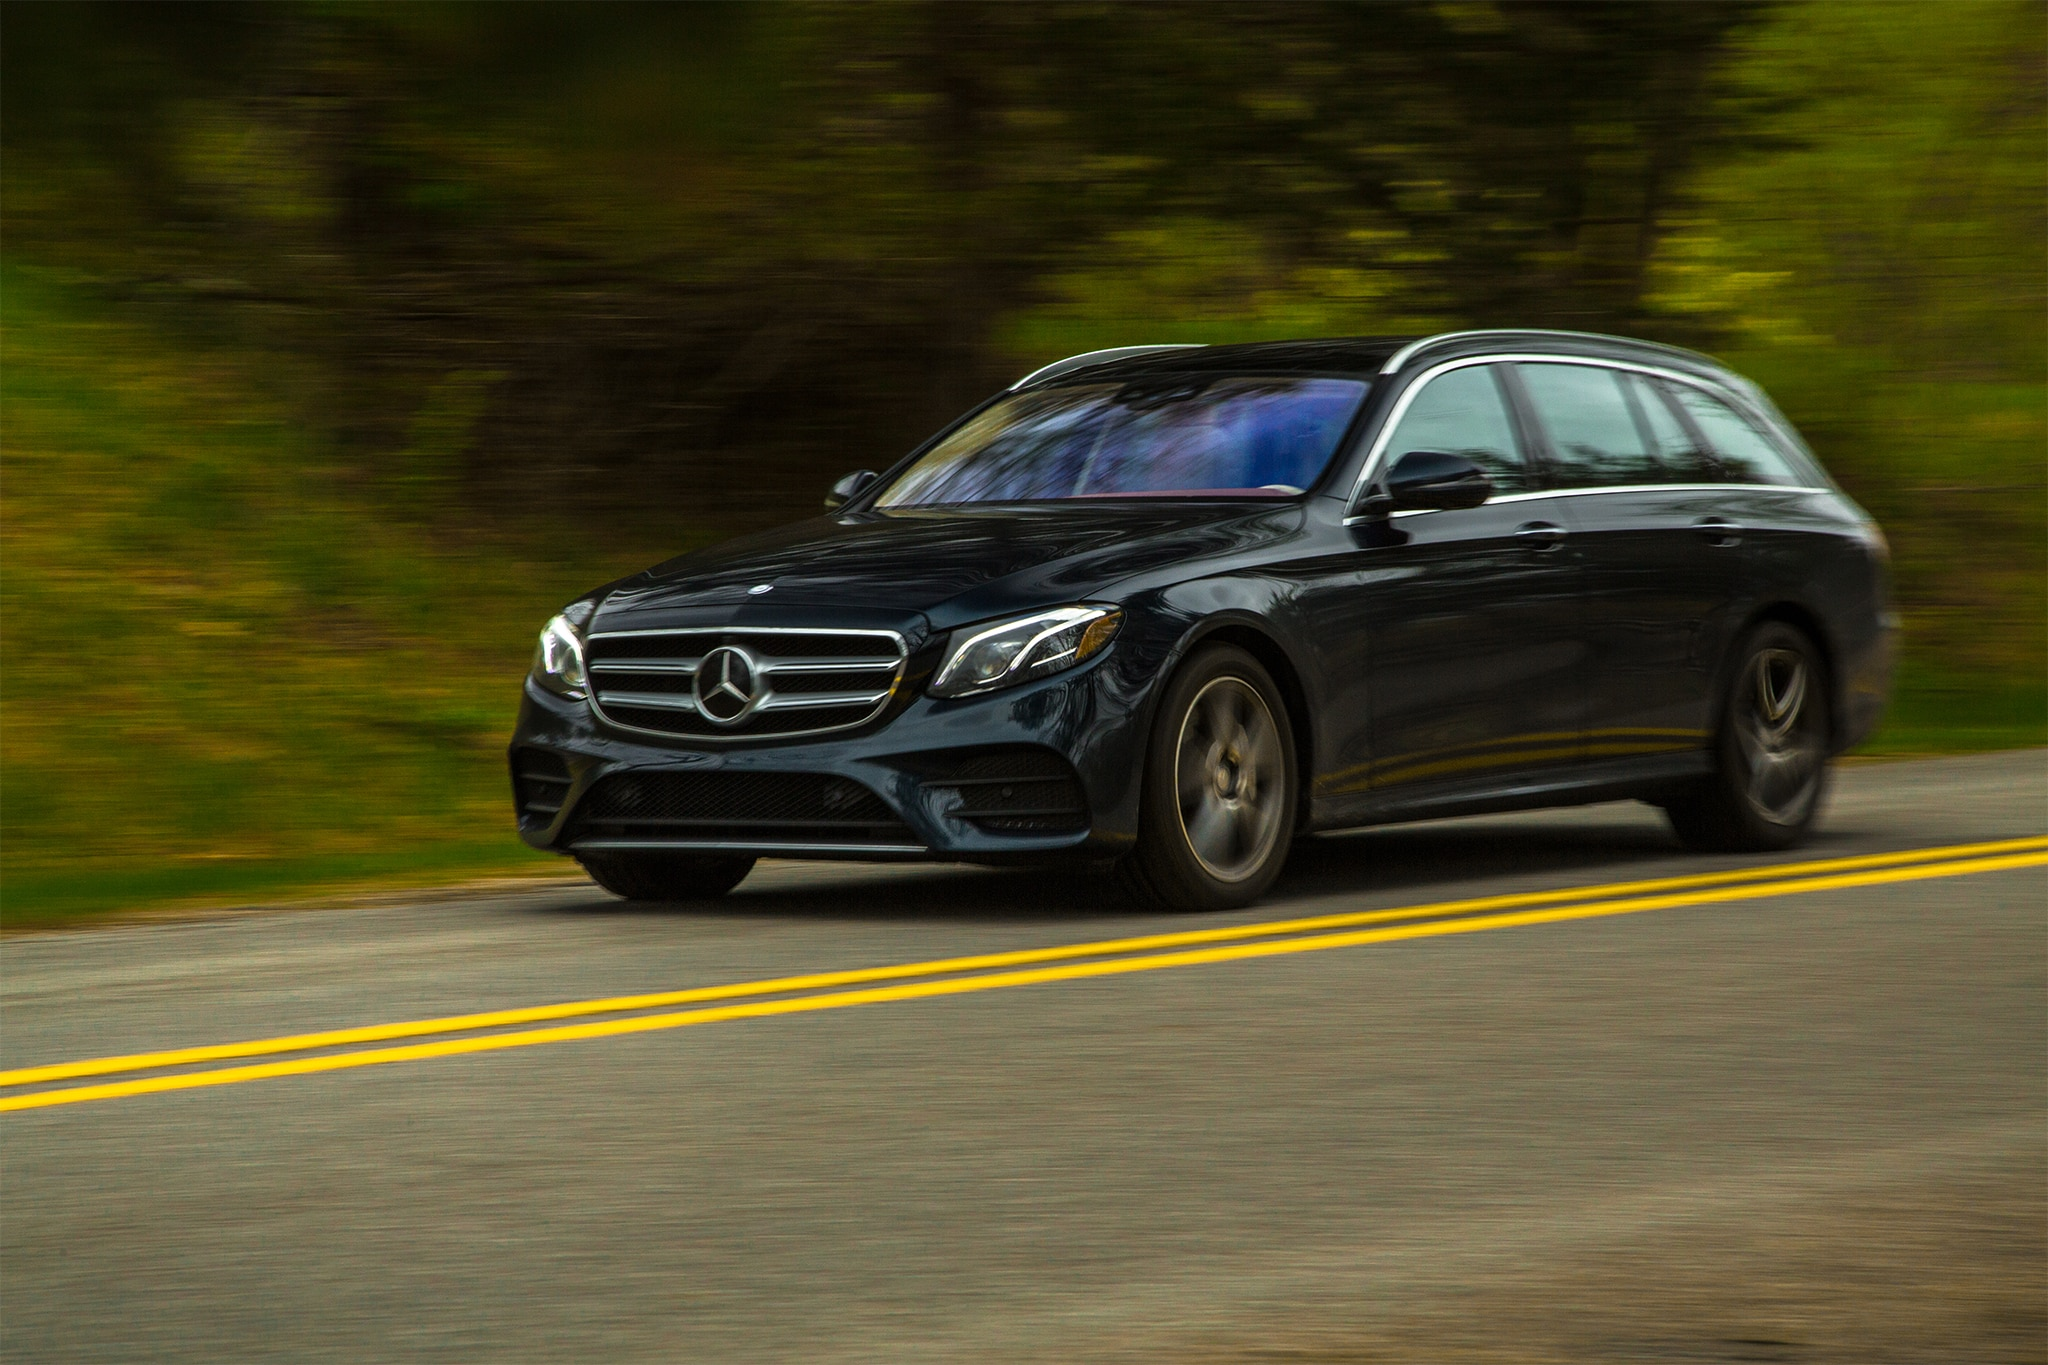 2017 Mercedes Benz E400 4Matic Wagon Front Three Quarter In Motion 02